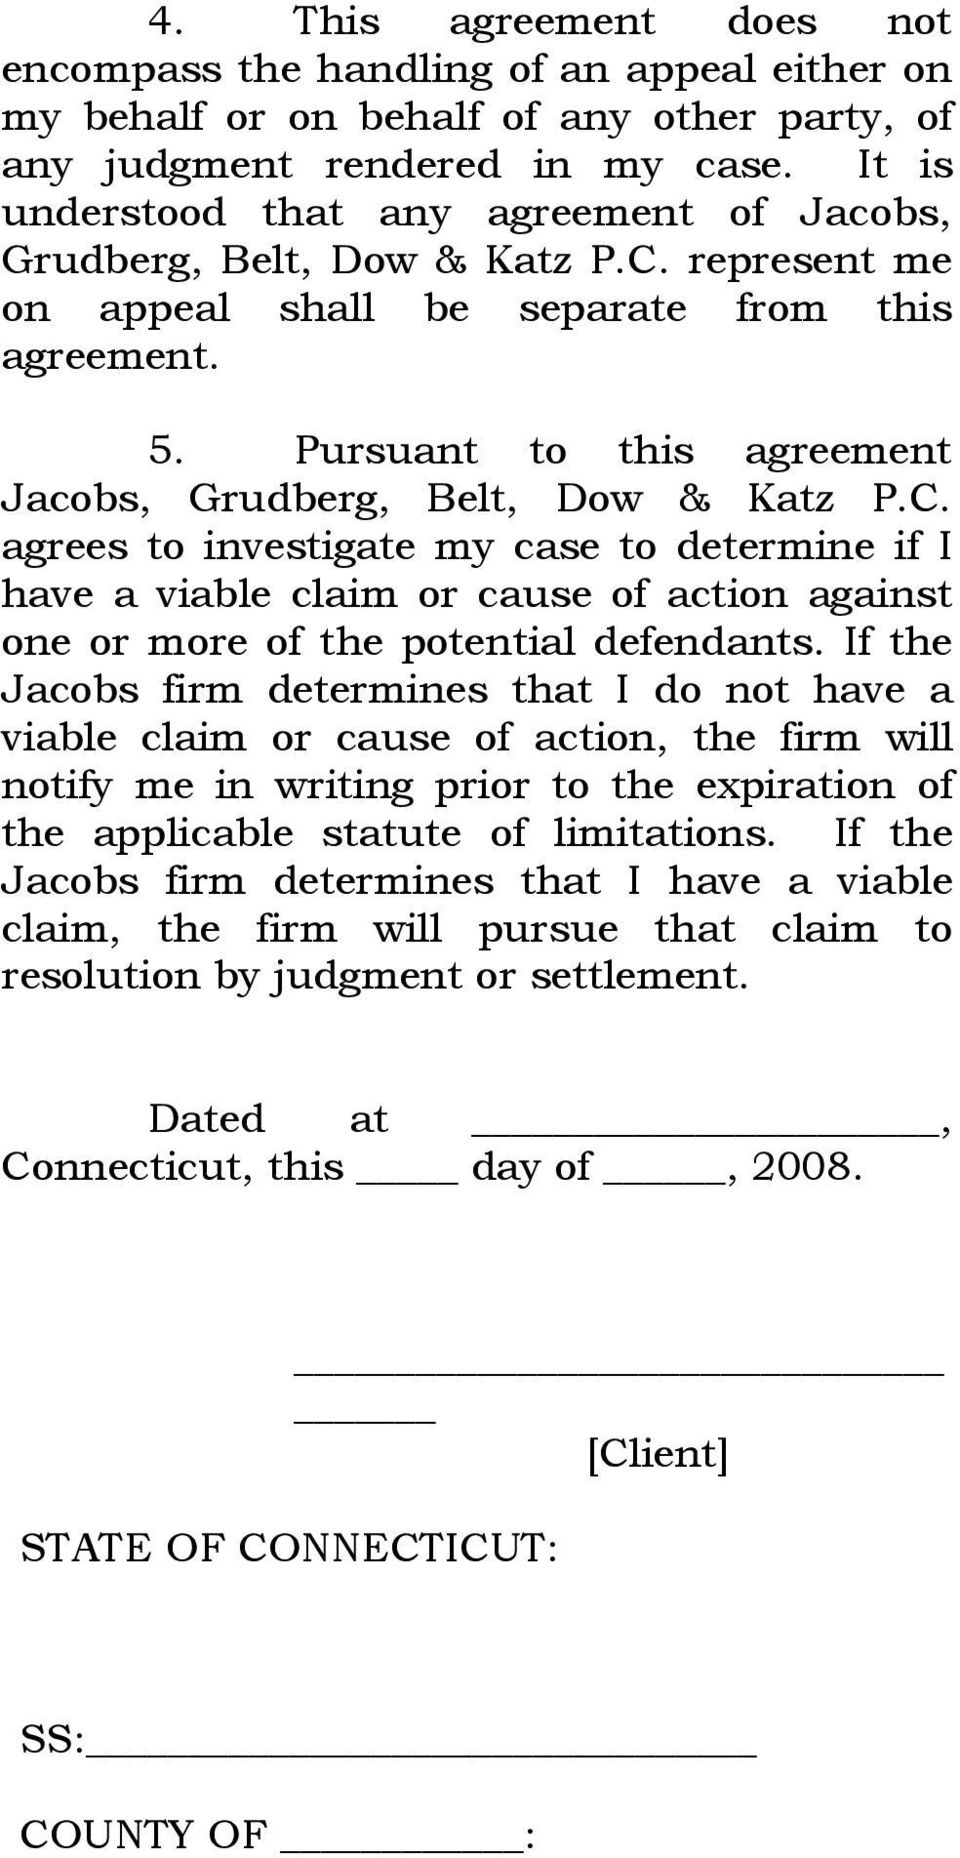 Pursuant to this agreement Jacobs, Grudberg, Belt, Dow & Katz P.C.